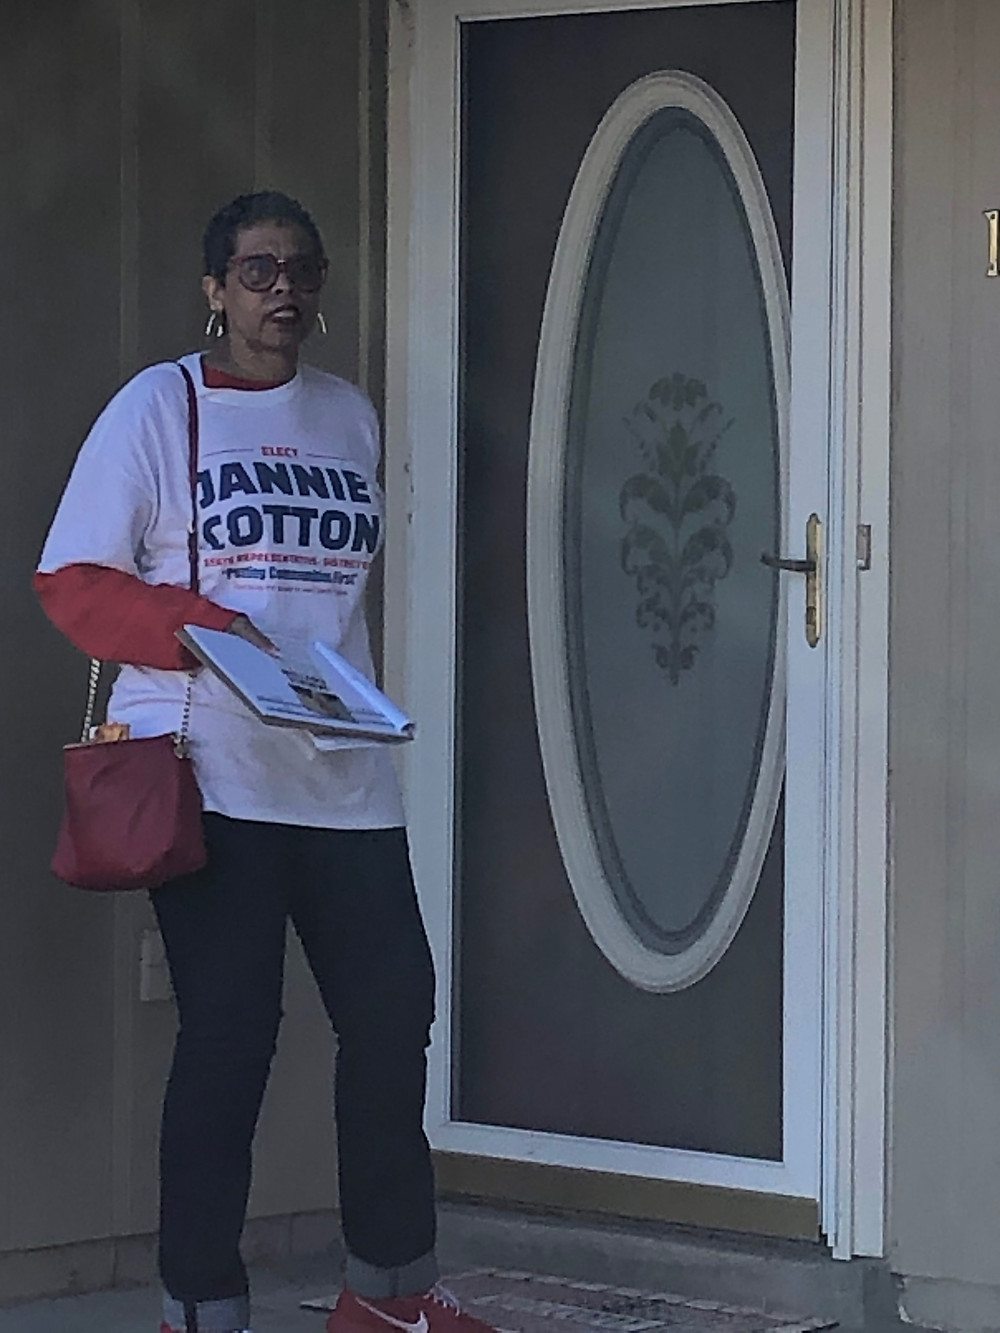 Candidate Jannie Cotton in action canvassing and knocking on doors.